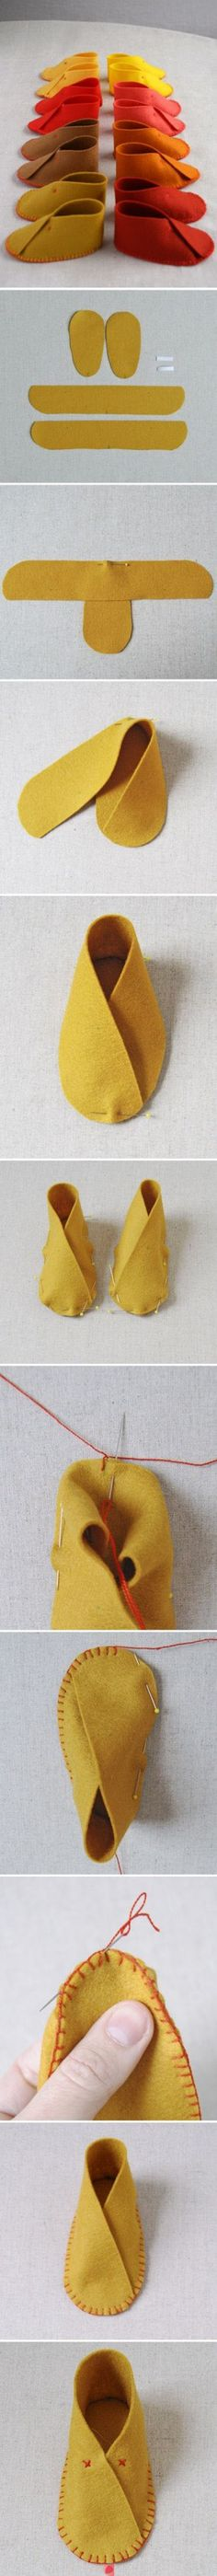 felt booties: + Add a loop on one side and a button on the other, as a fastener. Or, a ribbon going around the entire ankle, as a tie fastener.